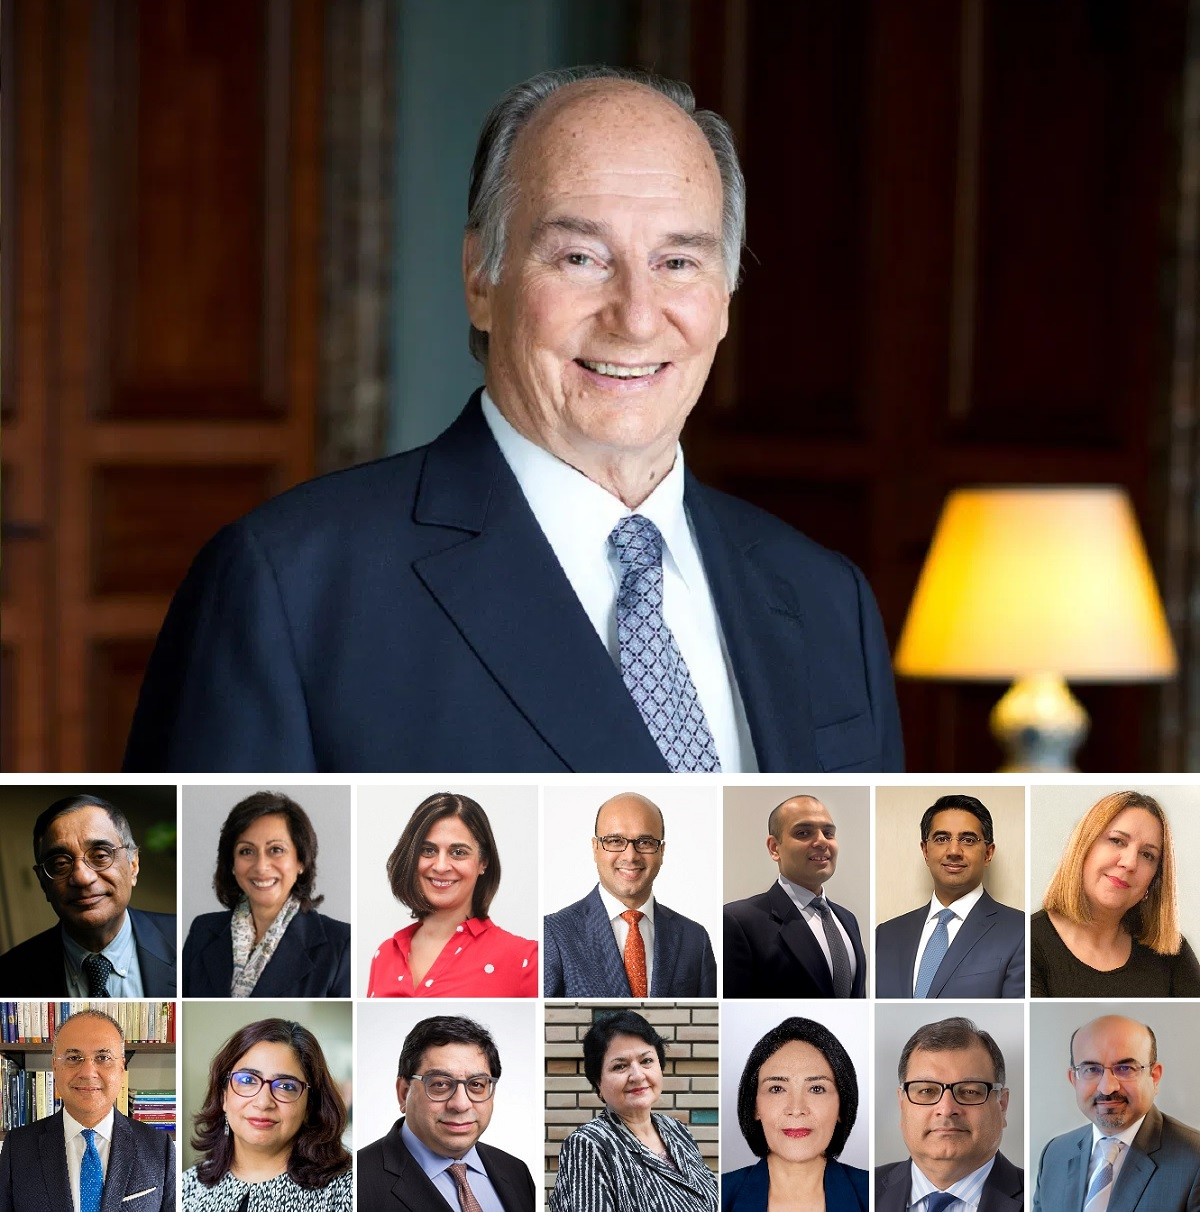 New Members Appointed by Mawlana Hazar Imam to Board of Governors of the Institute of Ismaili Studies Reflect Diversity and Gender Balance